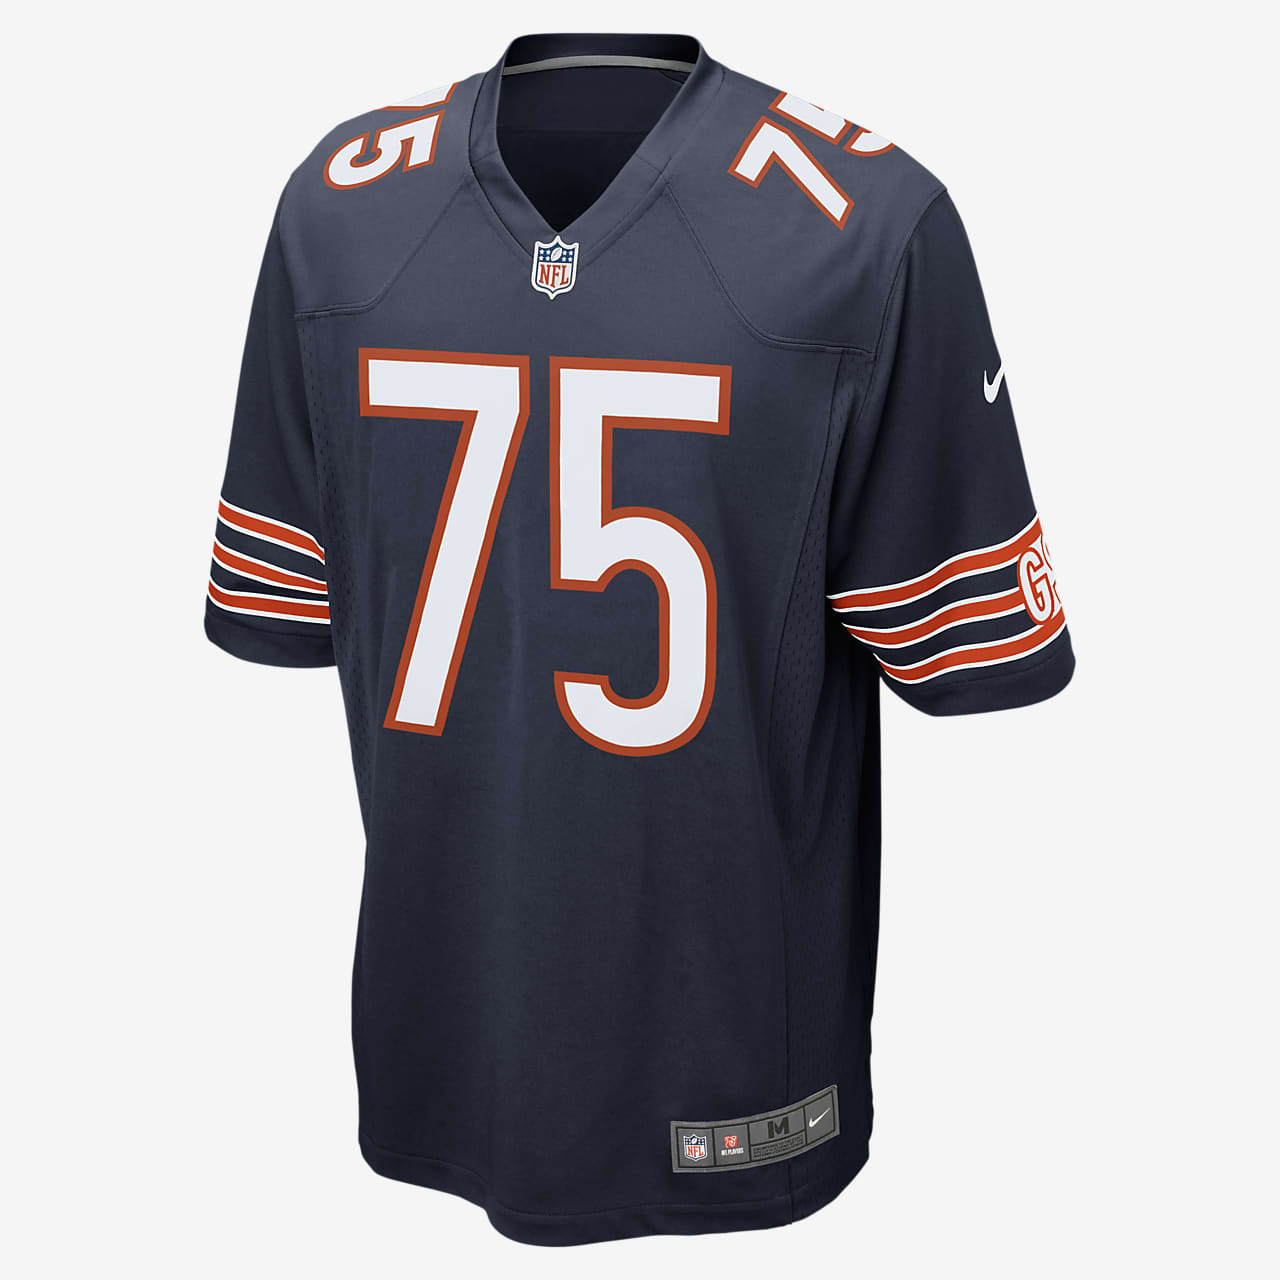 NFL Chicago Bears (Kyle Long) Men's American Football Home Game Jersey